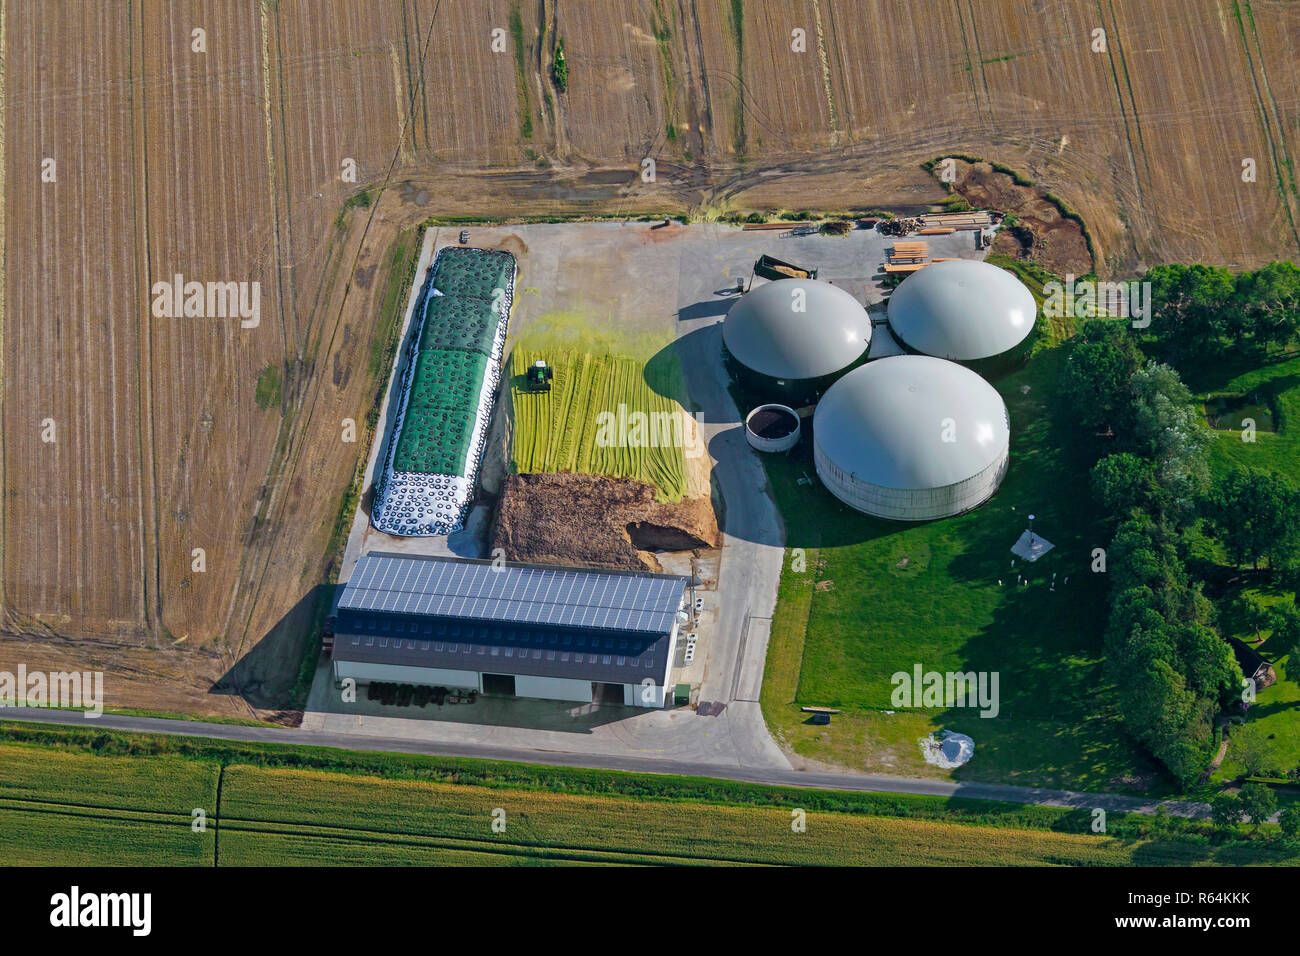 Anaerobic Digestion Plant Stock Photos Some Biogas Diagram Digester Aerial View Over Showing Digesters With Inflatable Holders Schleswig Holstein